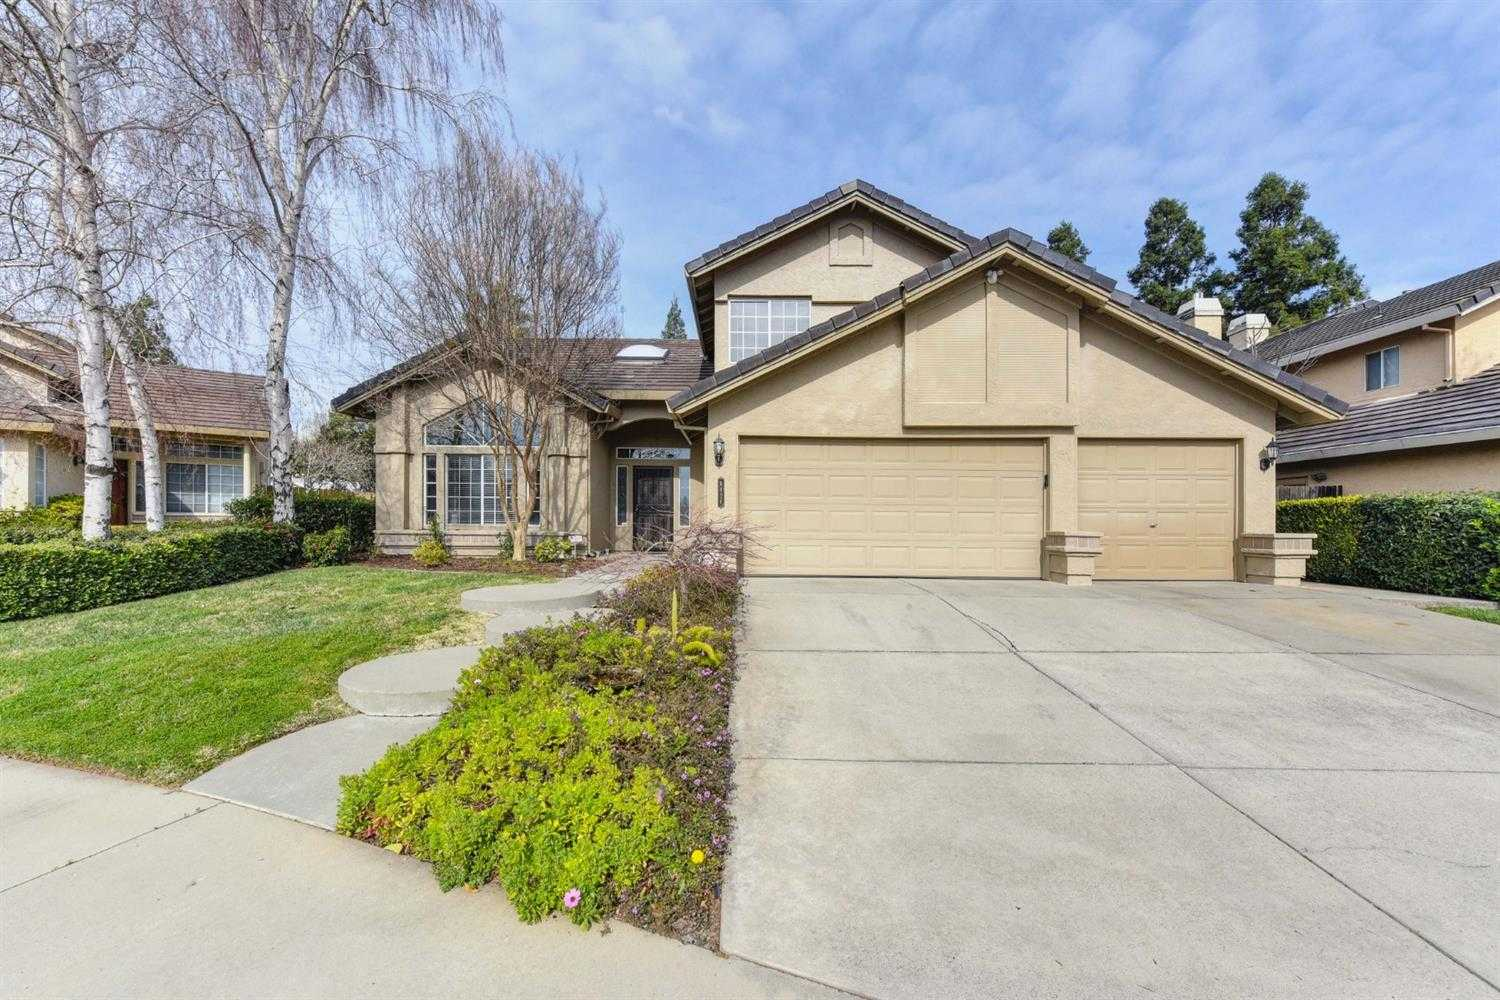 9426 Dunkerrin Way Elk Grove, CA 95758